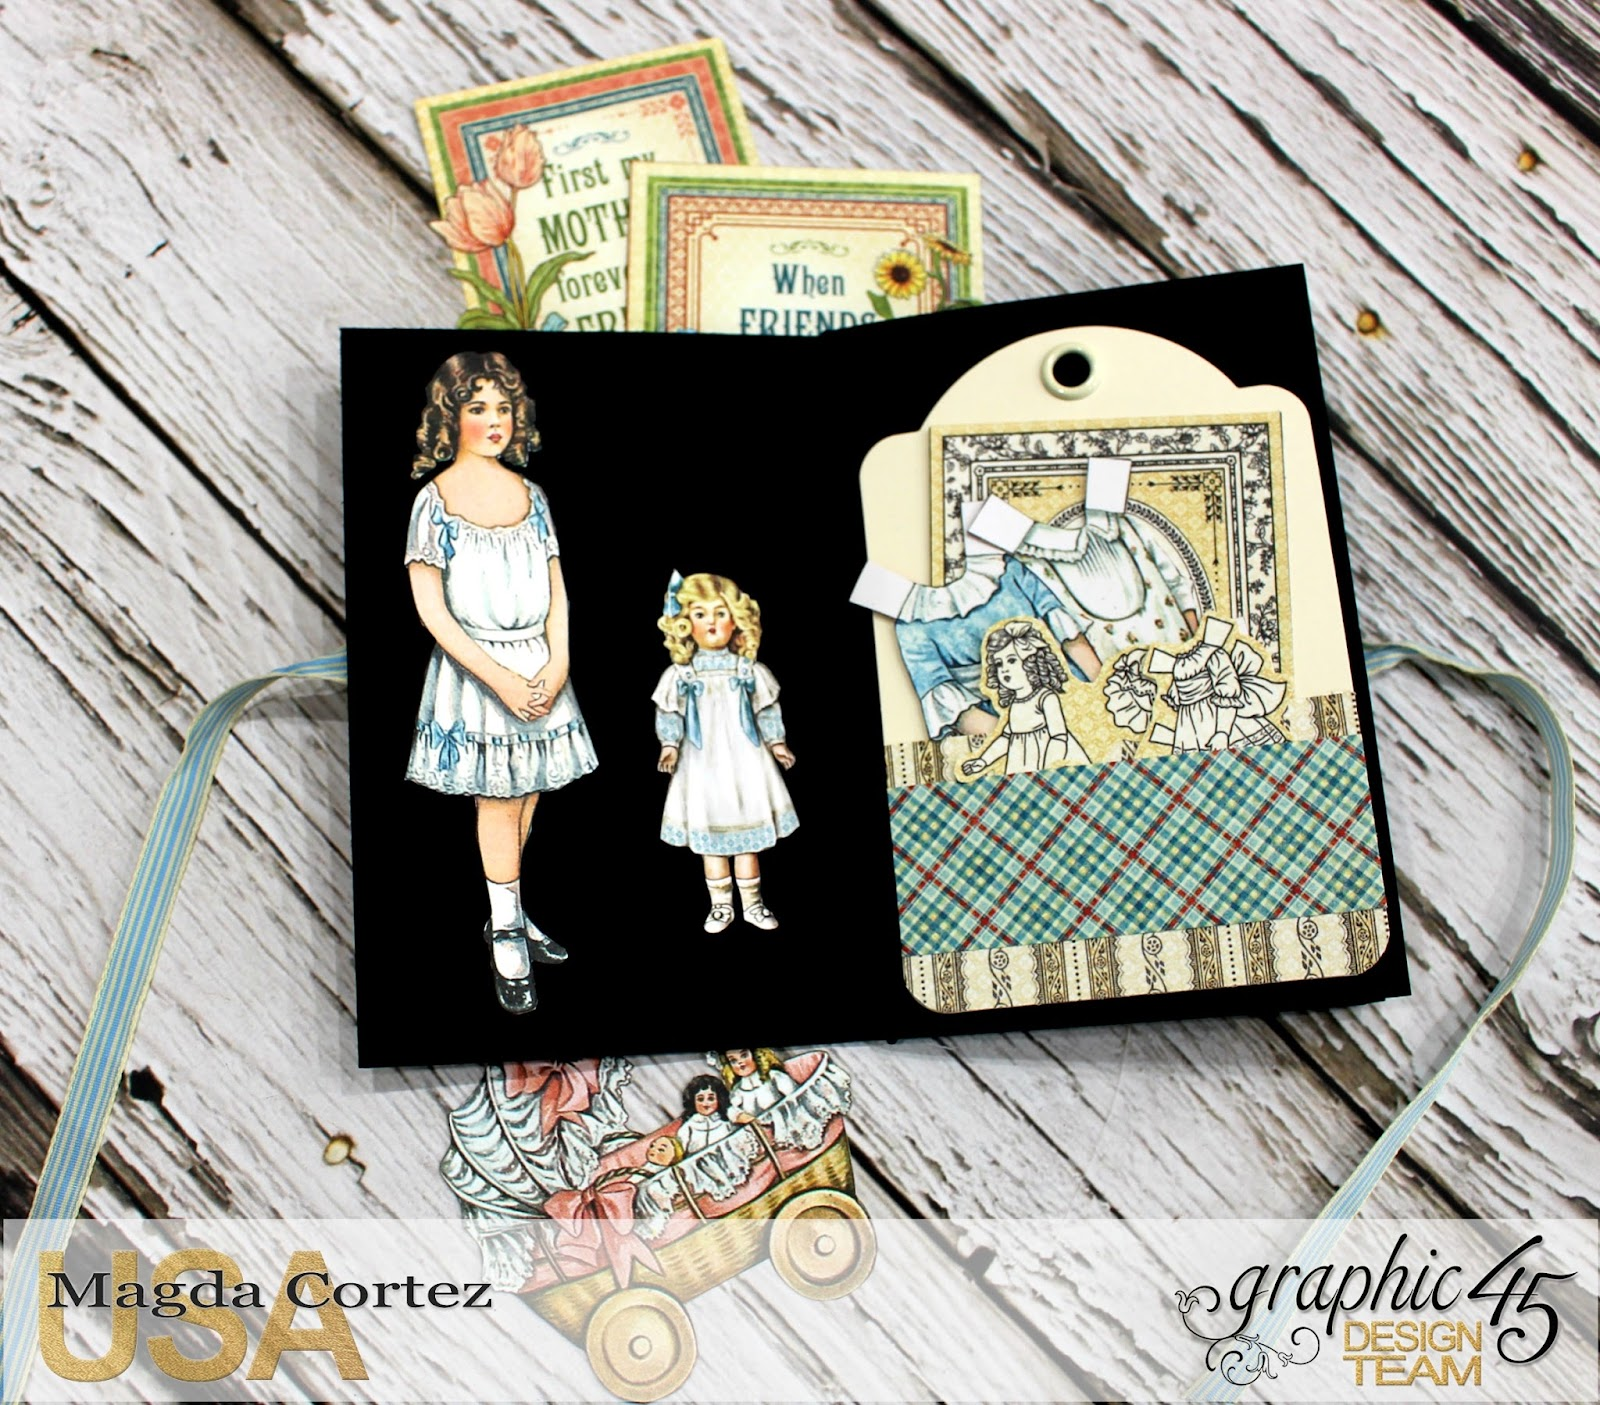 Penny's Color My World - Penny's Family Paper Doll By Magda Cortez, Product of Graphic 45, Photo 05 of 11 with Tutorial.jpg